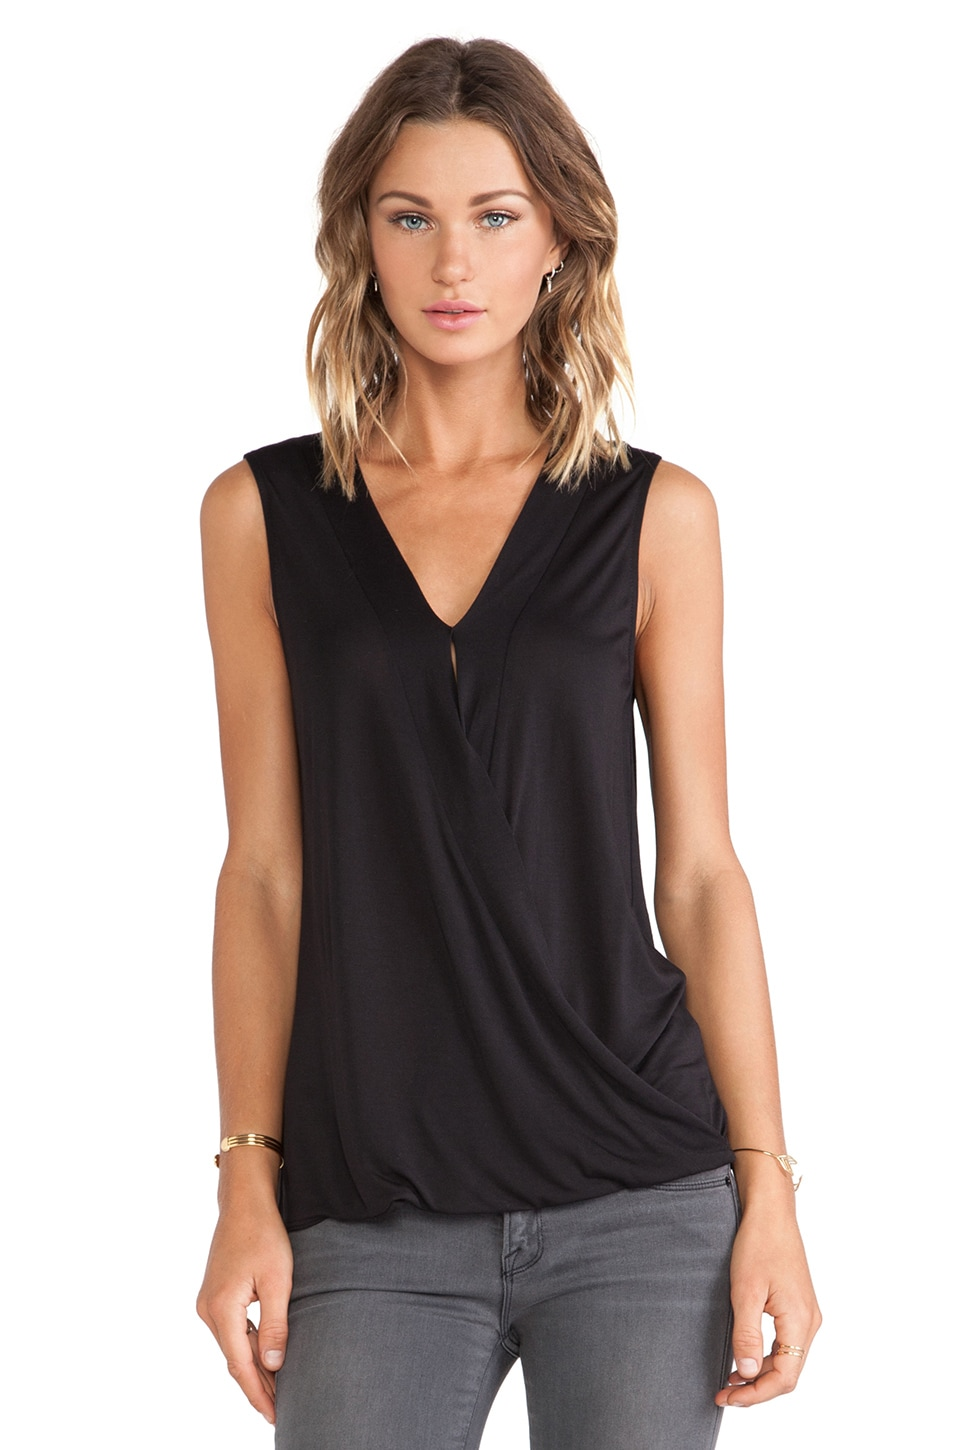 Lanston Surplice Short Sleeve in Black